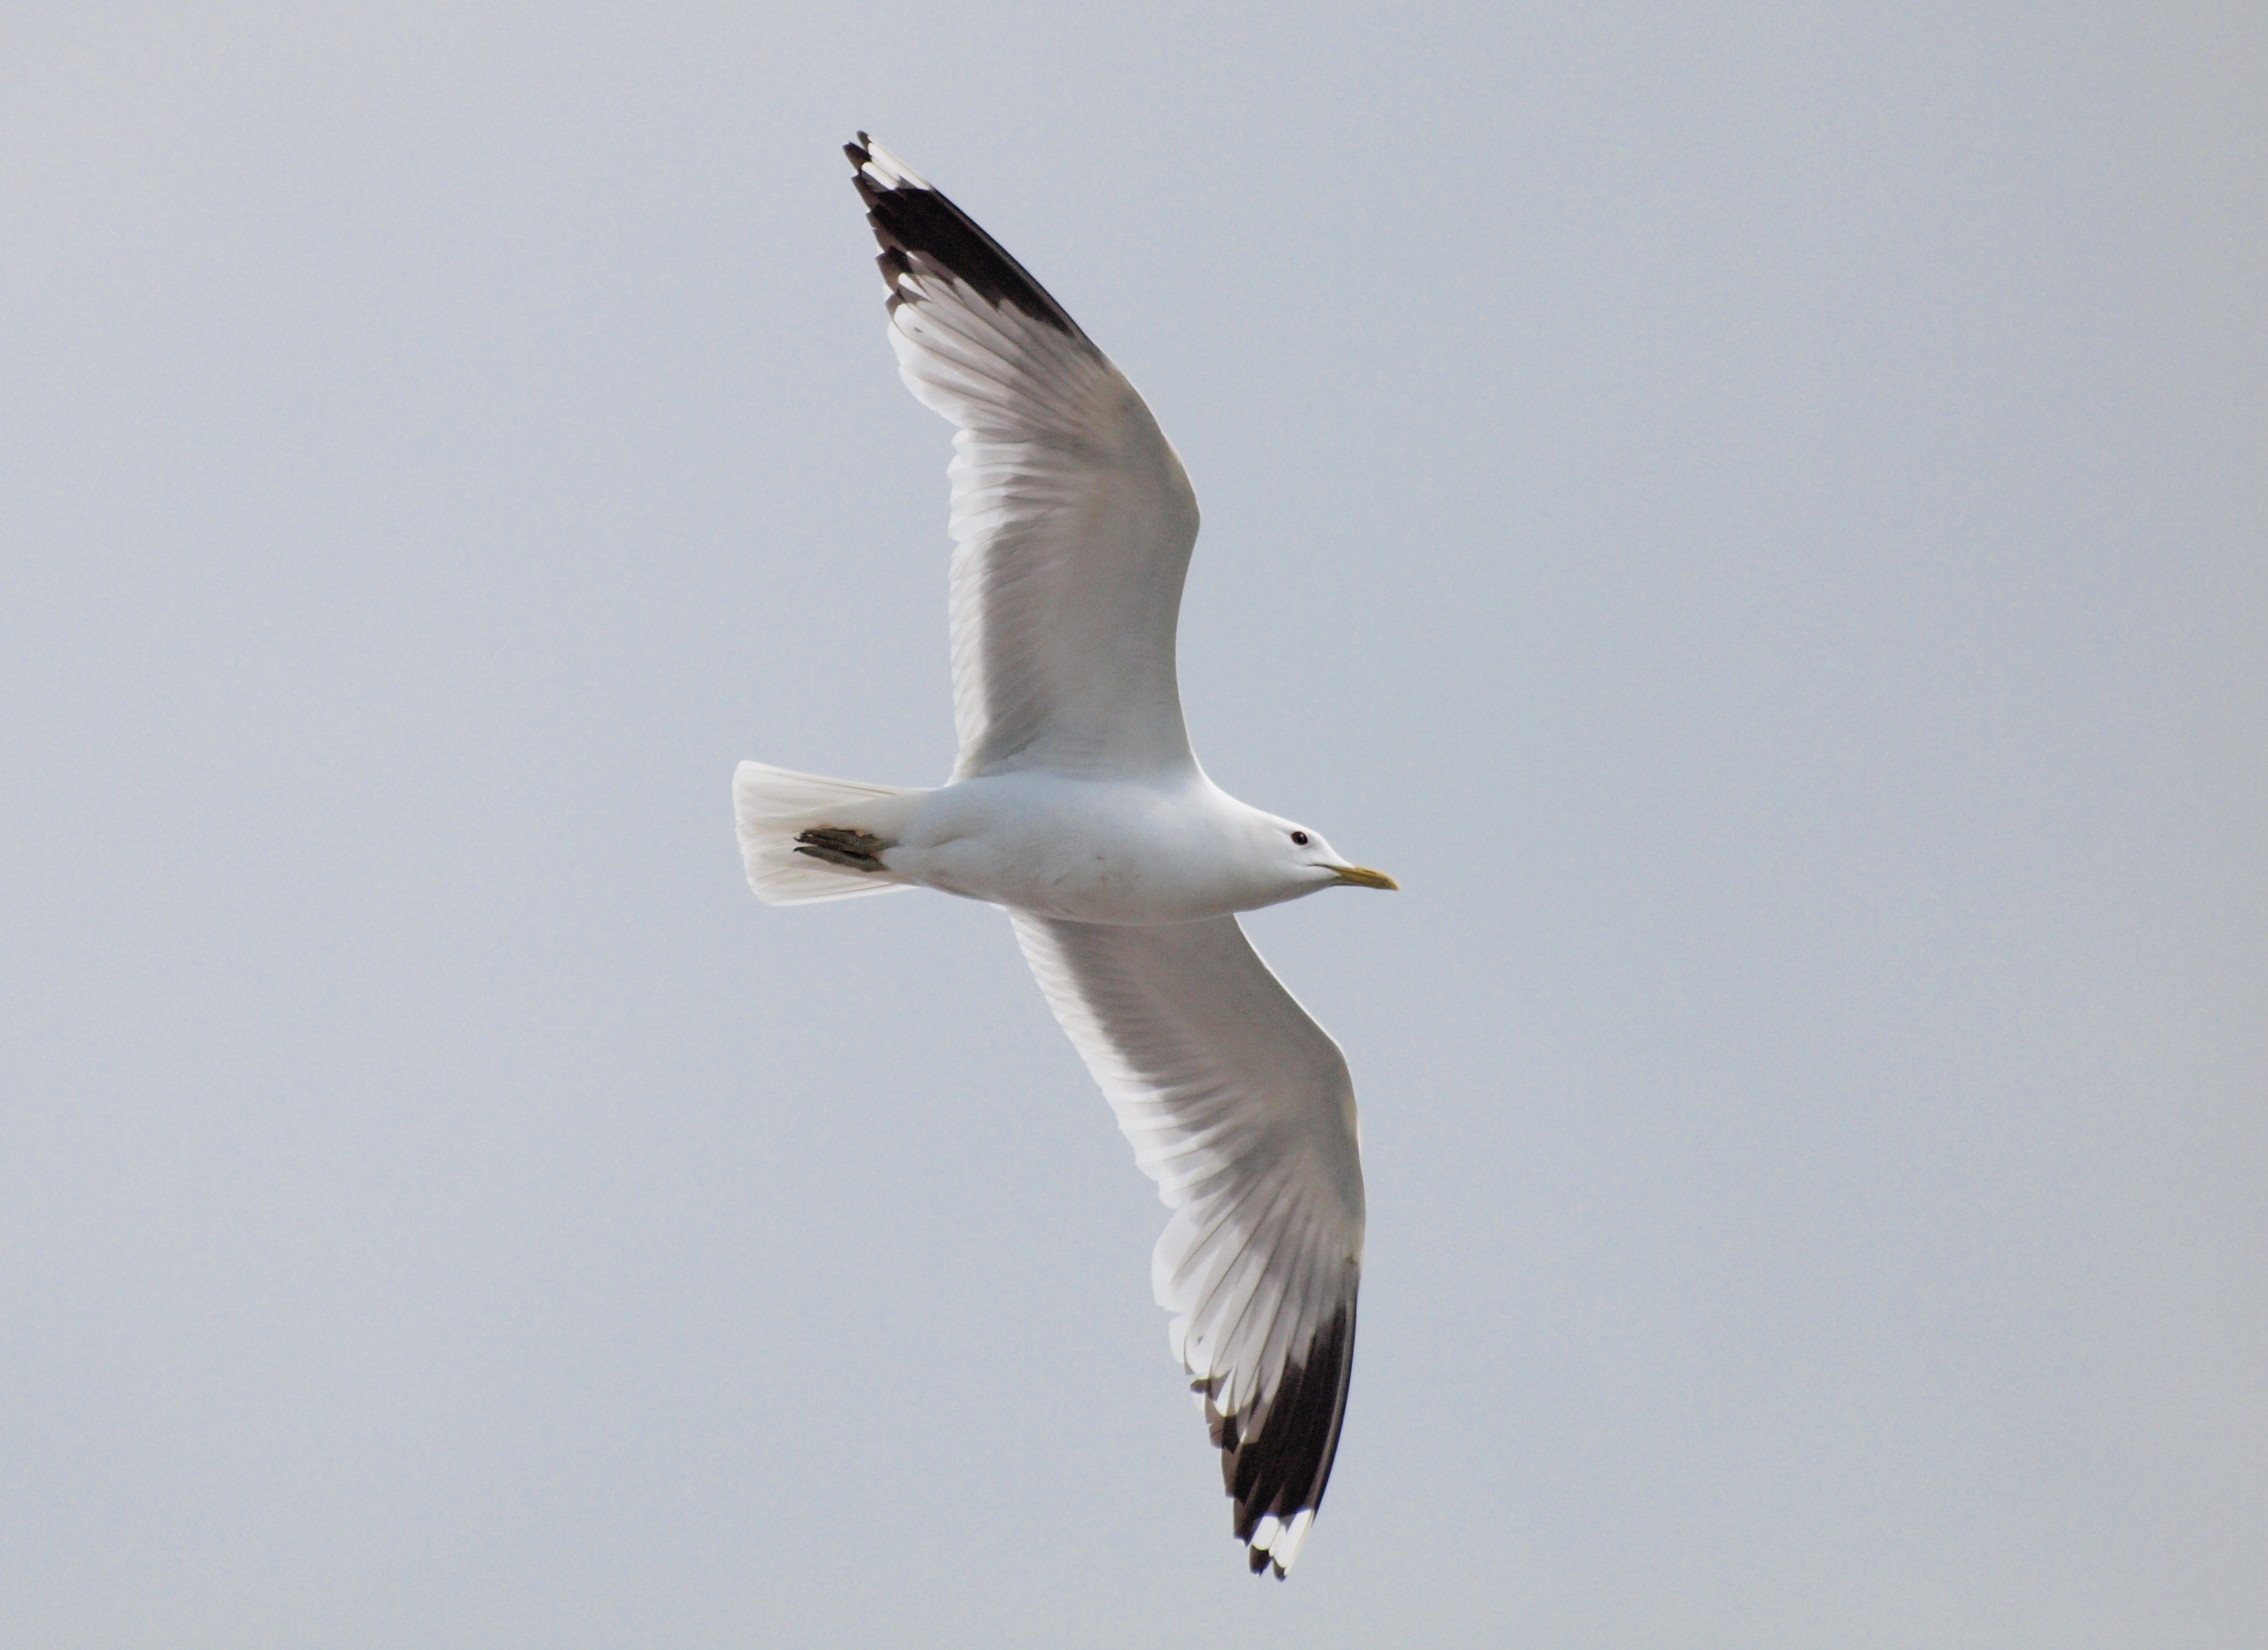 Image of common gull